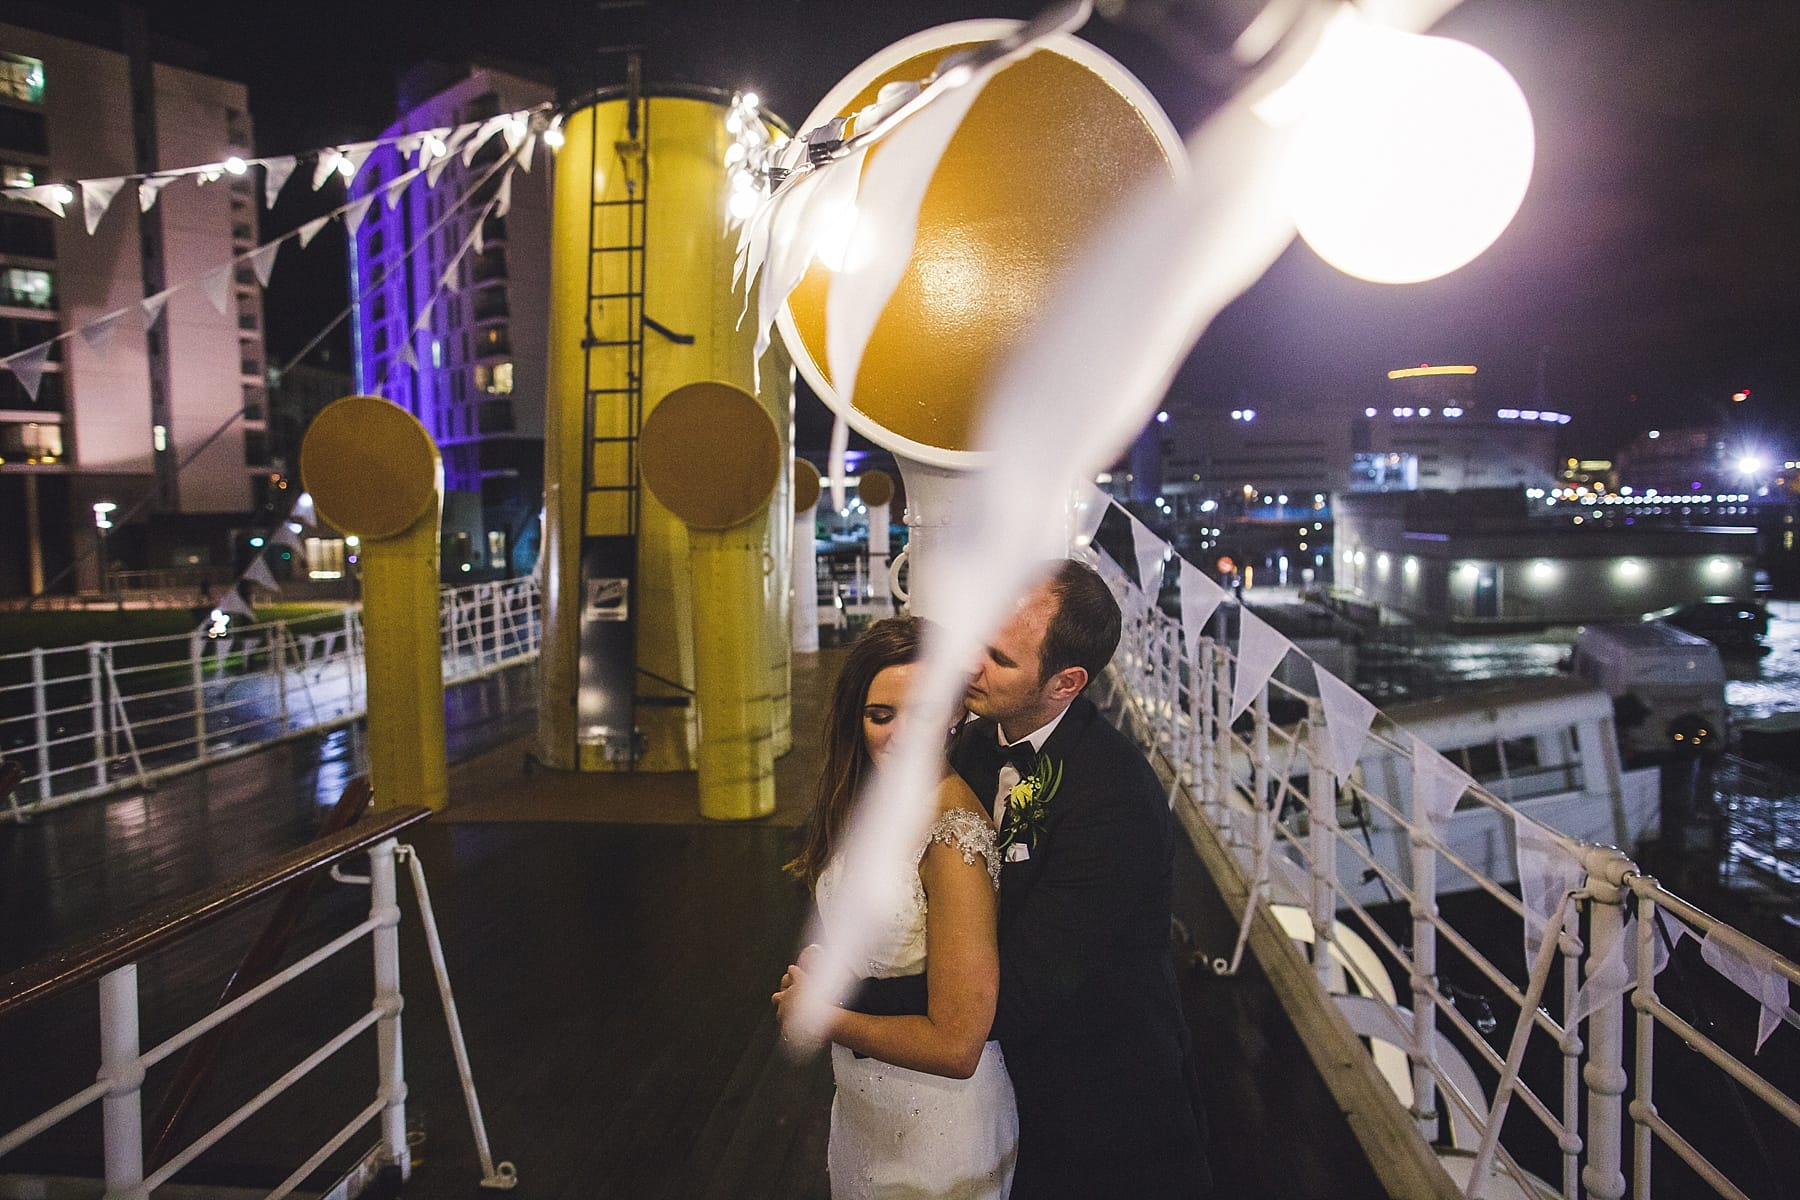 belfast wedding,titanic quarter,all aboard,ss nomadic,northern ireland wedding photographer,dancing,bright,fun,colourful,wedding photo inspiration,